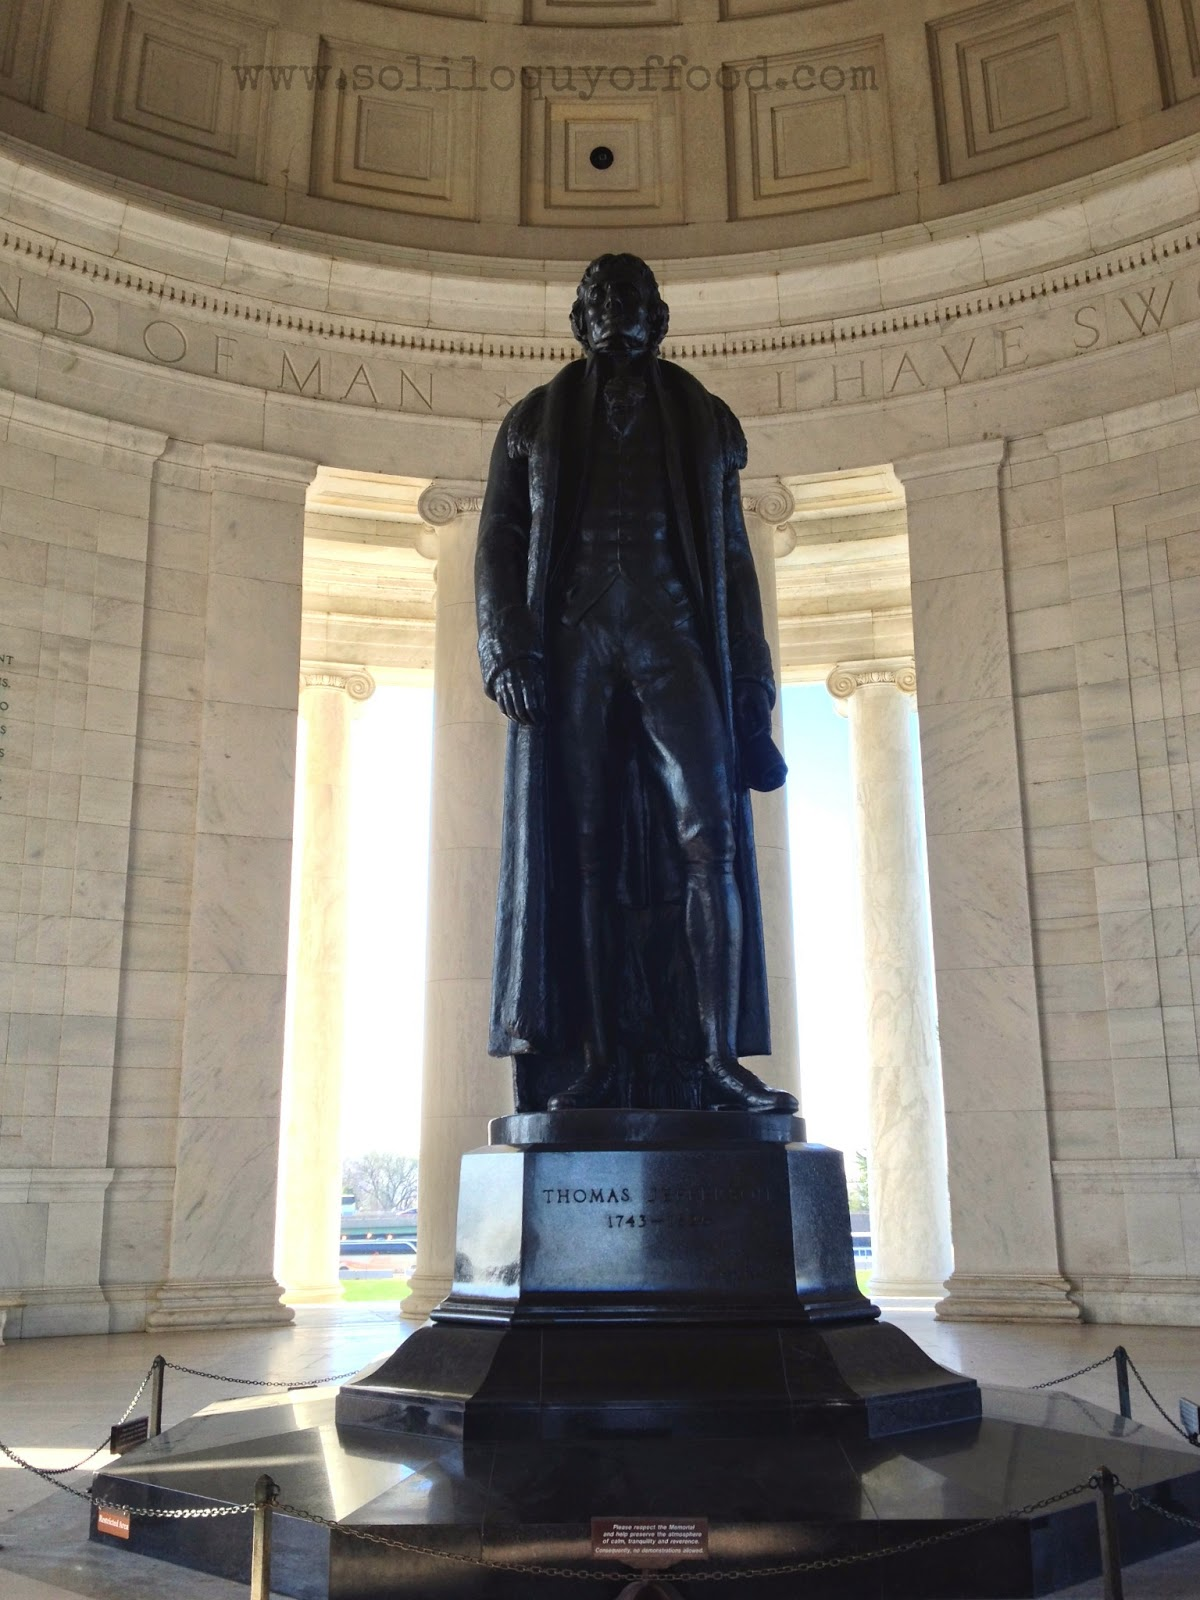 Jefferson stands 19 feet tall - The Jefferson Memorial - Cherry Blossoms 2014 - www.soliloquyoffood.com